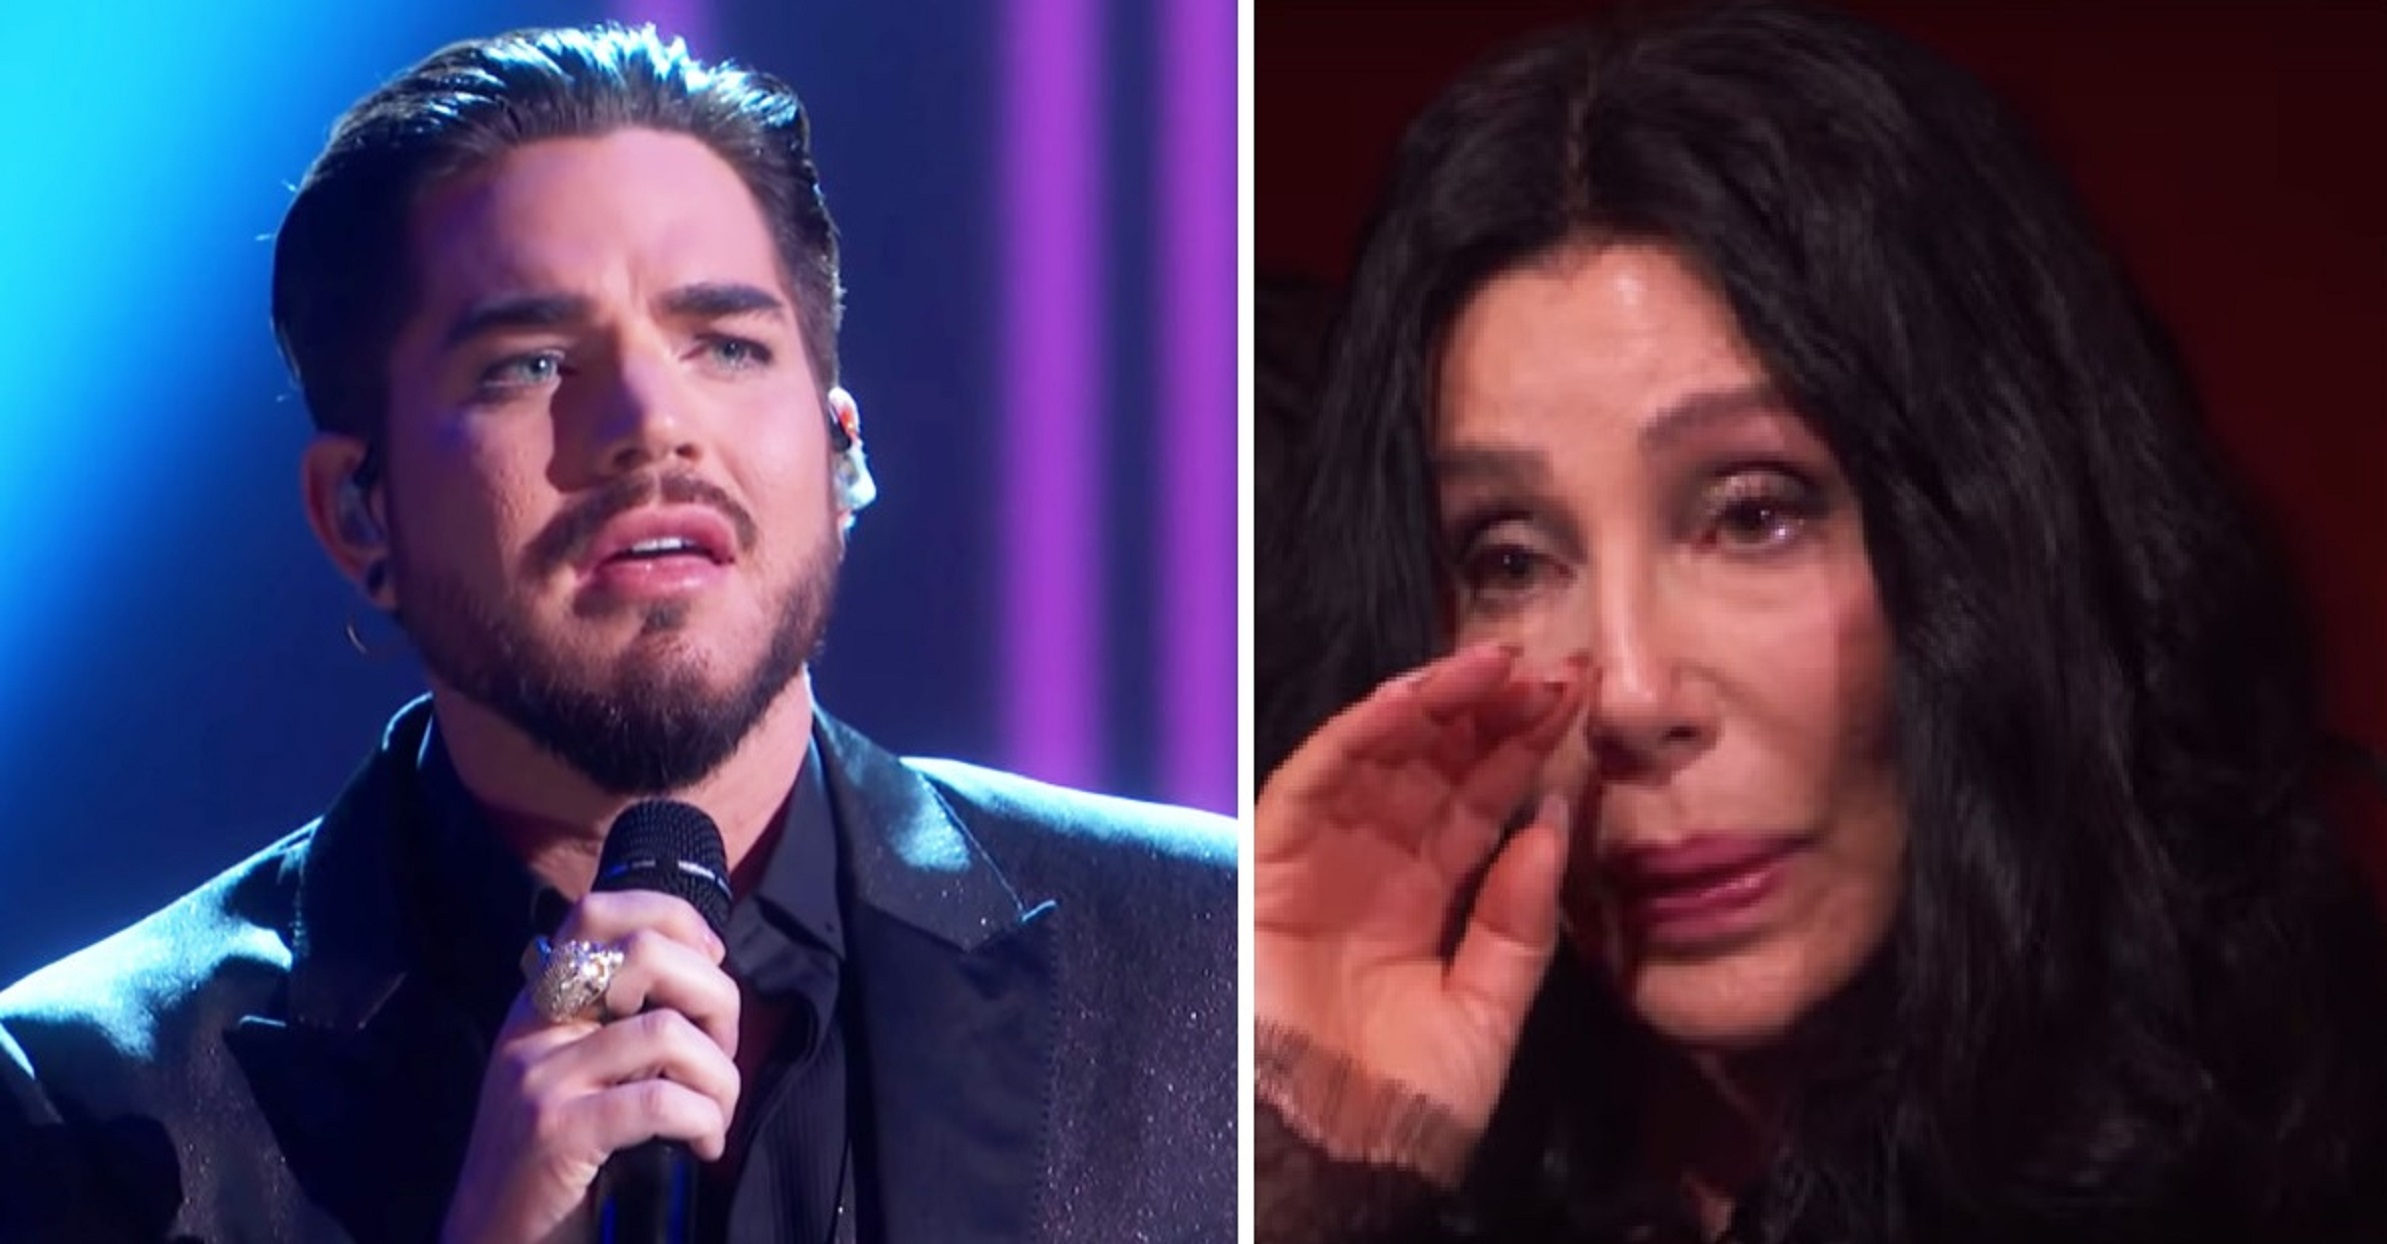 Watch: Adam Lambert Brings Cher To Tears With His Version Of 'Believe' At Kennedy Center Honors